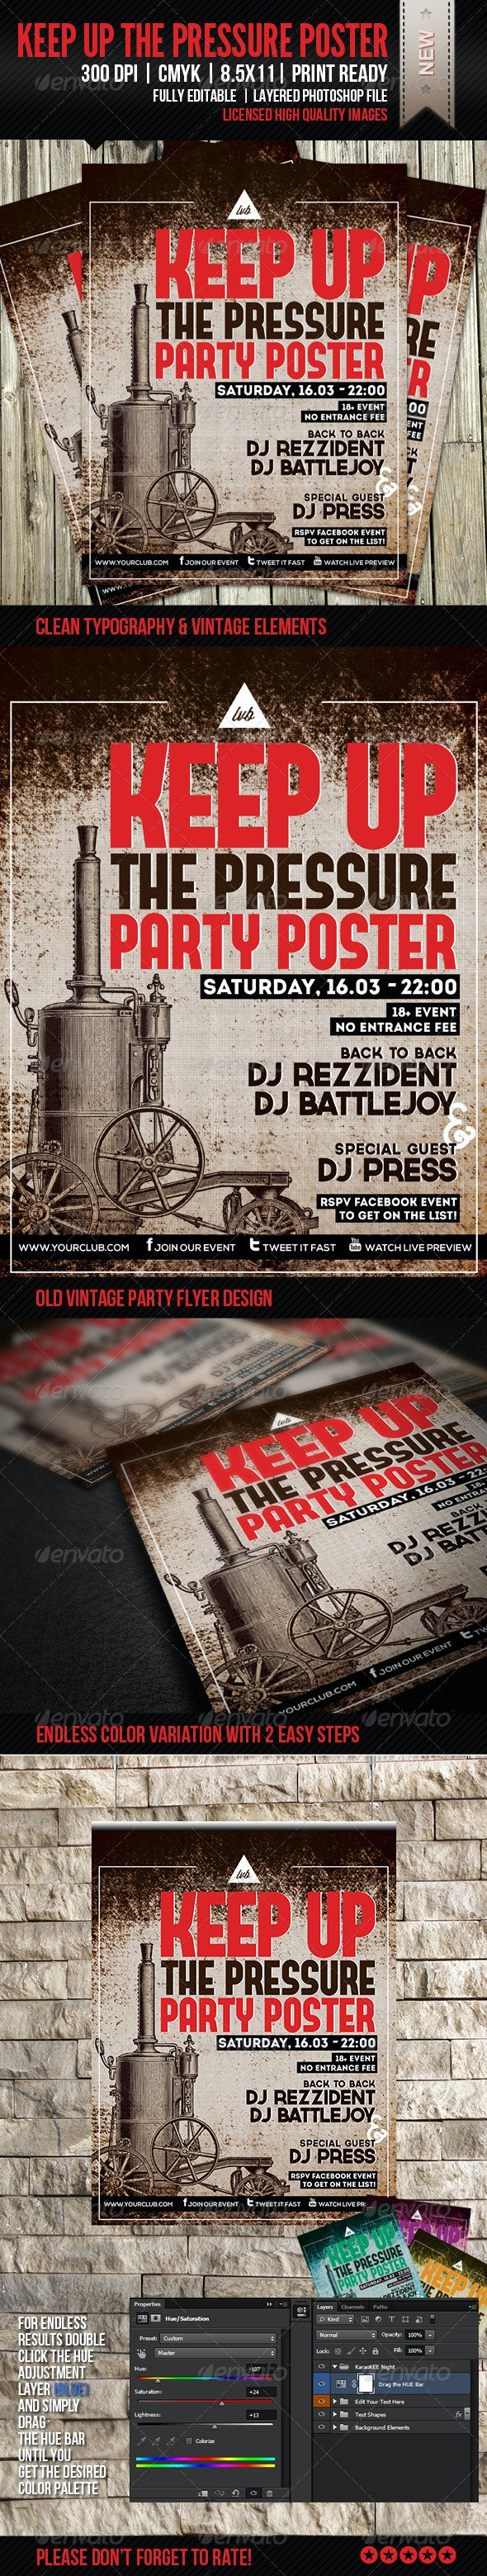 Keep Up The Pressure Party Poster - Clubs & Parties Events